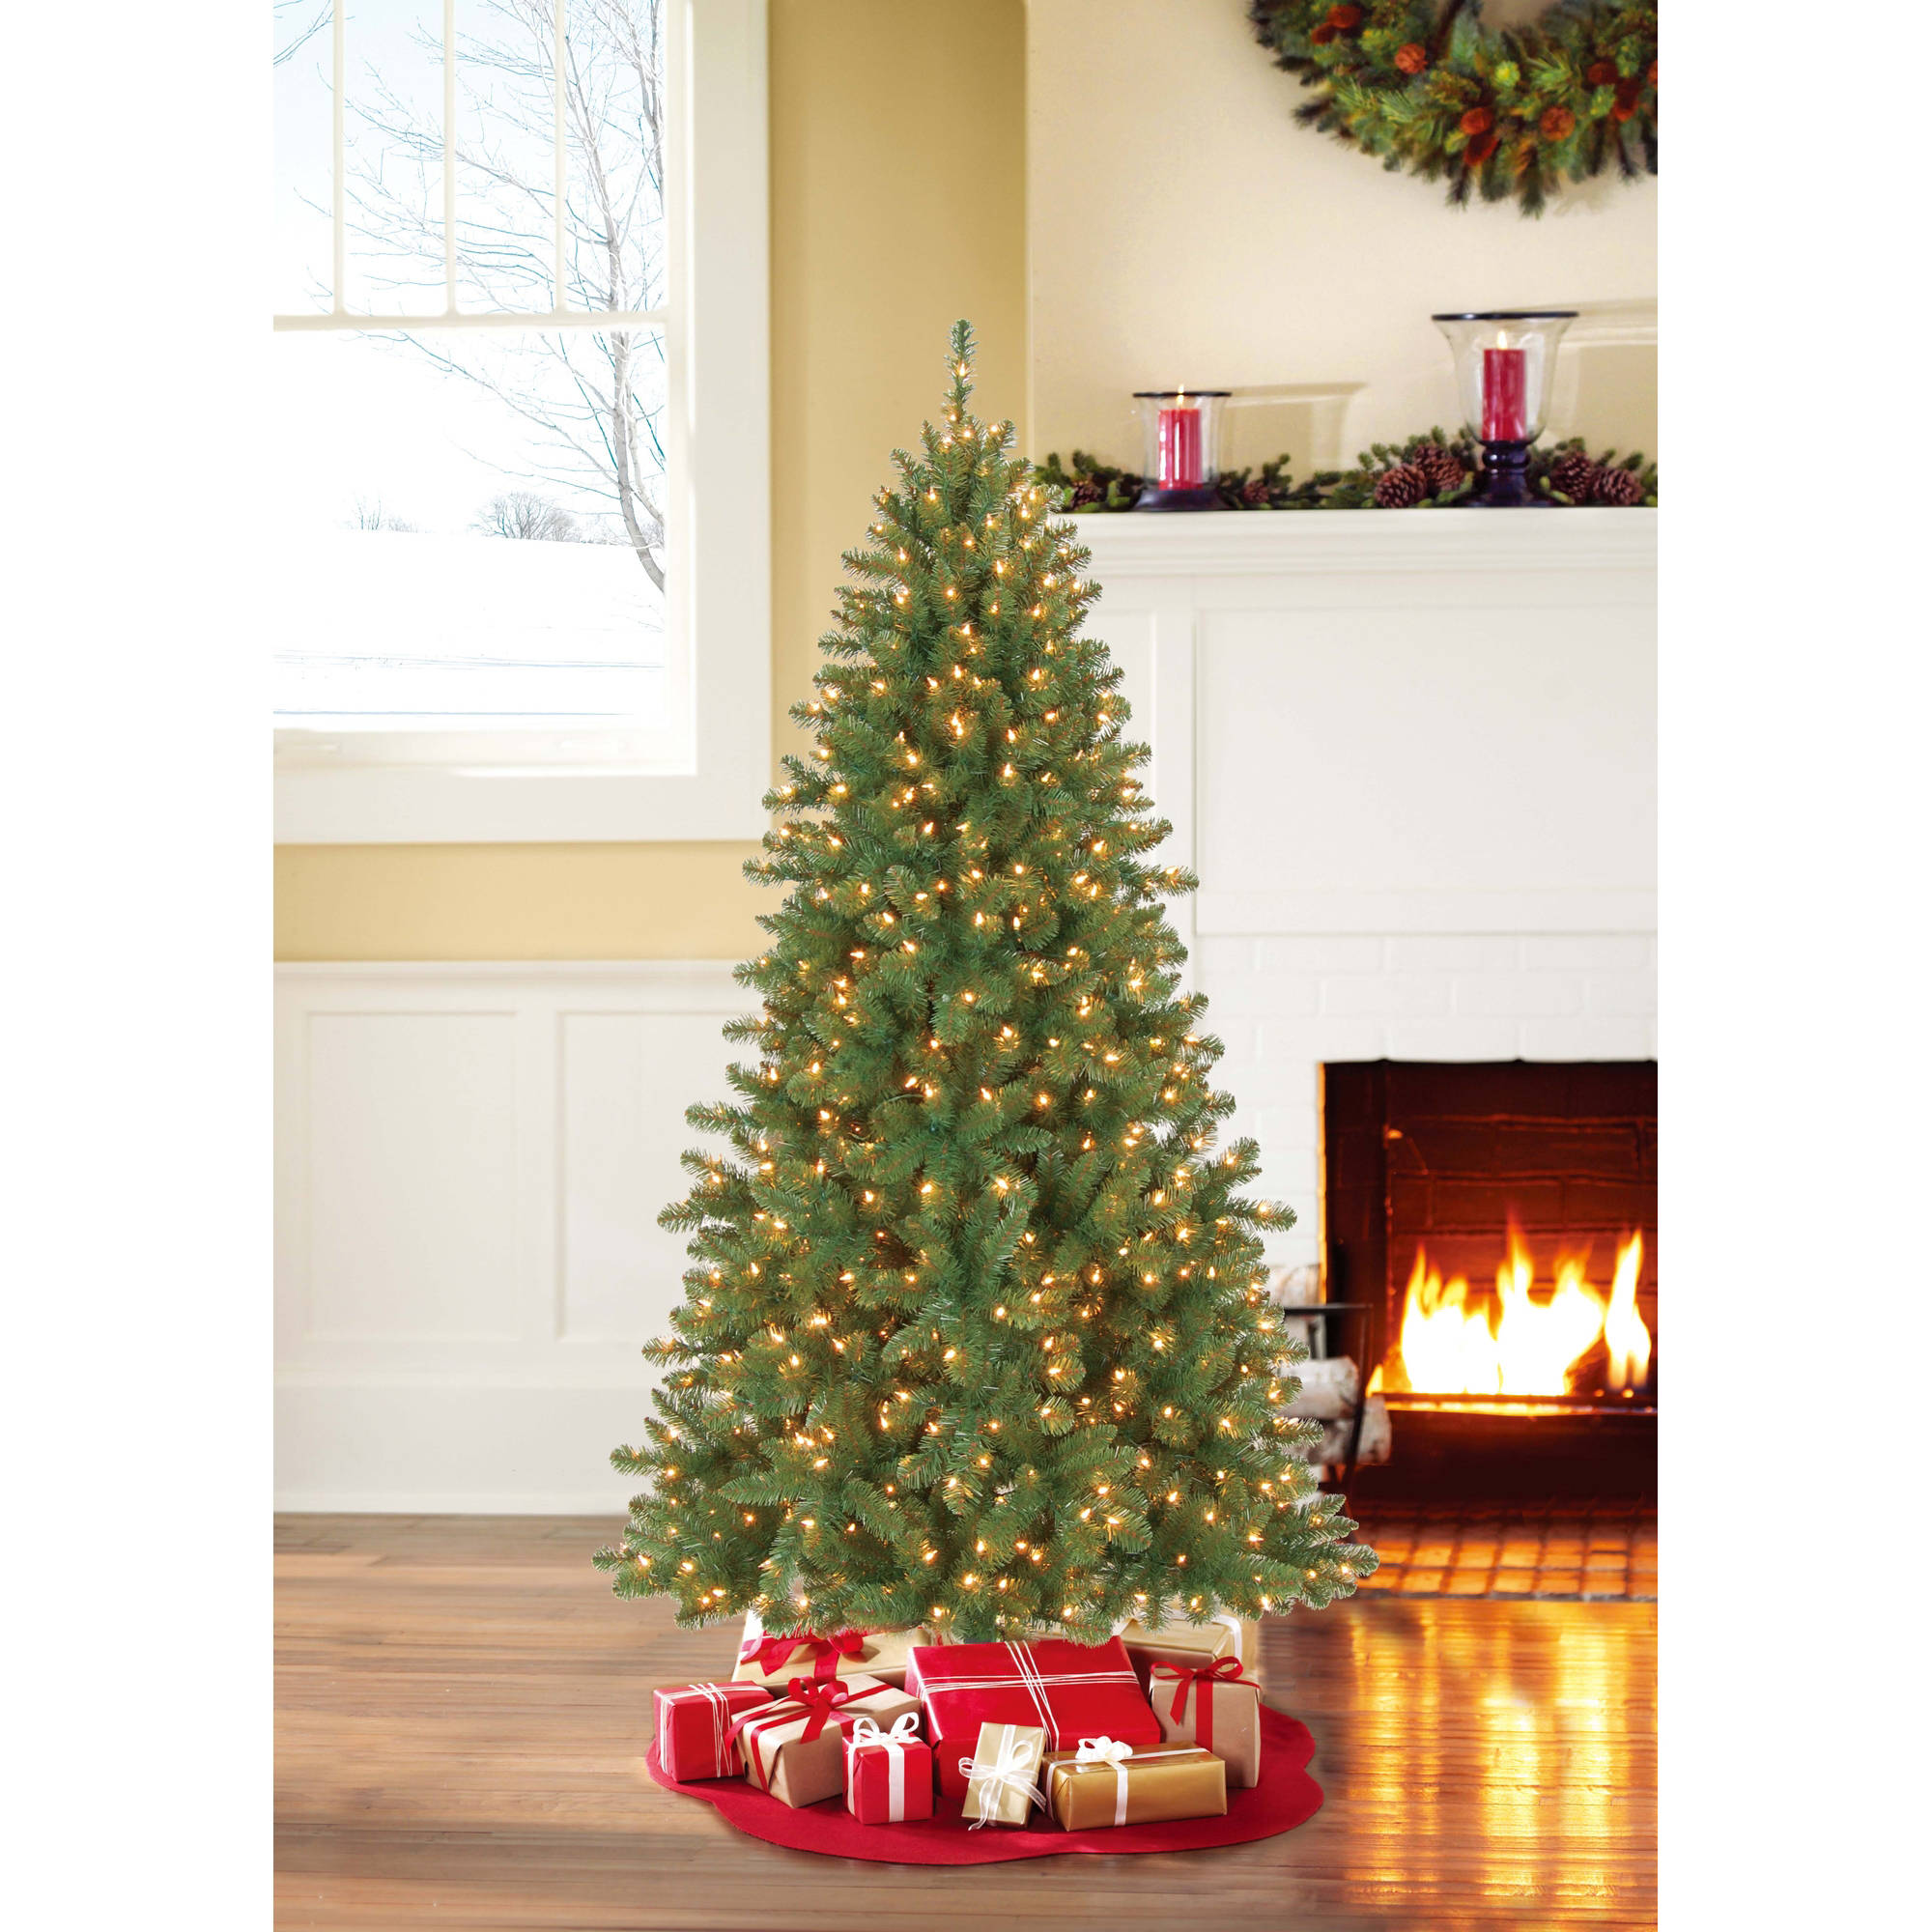 best choice products 7ft pre lit fiber optic artificial christmas pine tree w 280 lights 8 sequences stand green walmartcom - Pre Decorated Artificial Christmas Trees